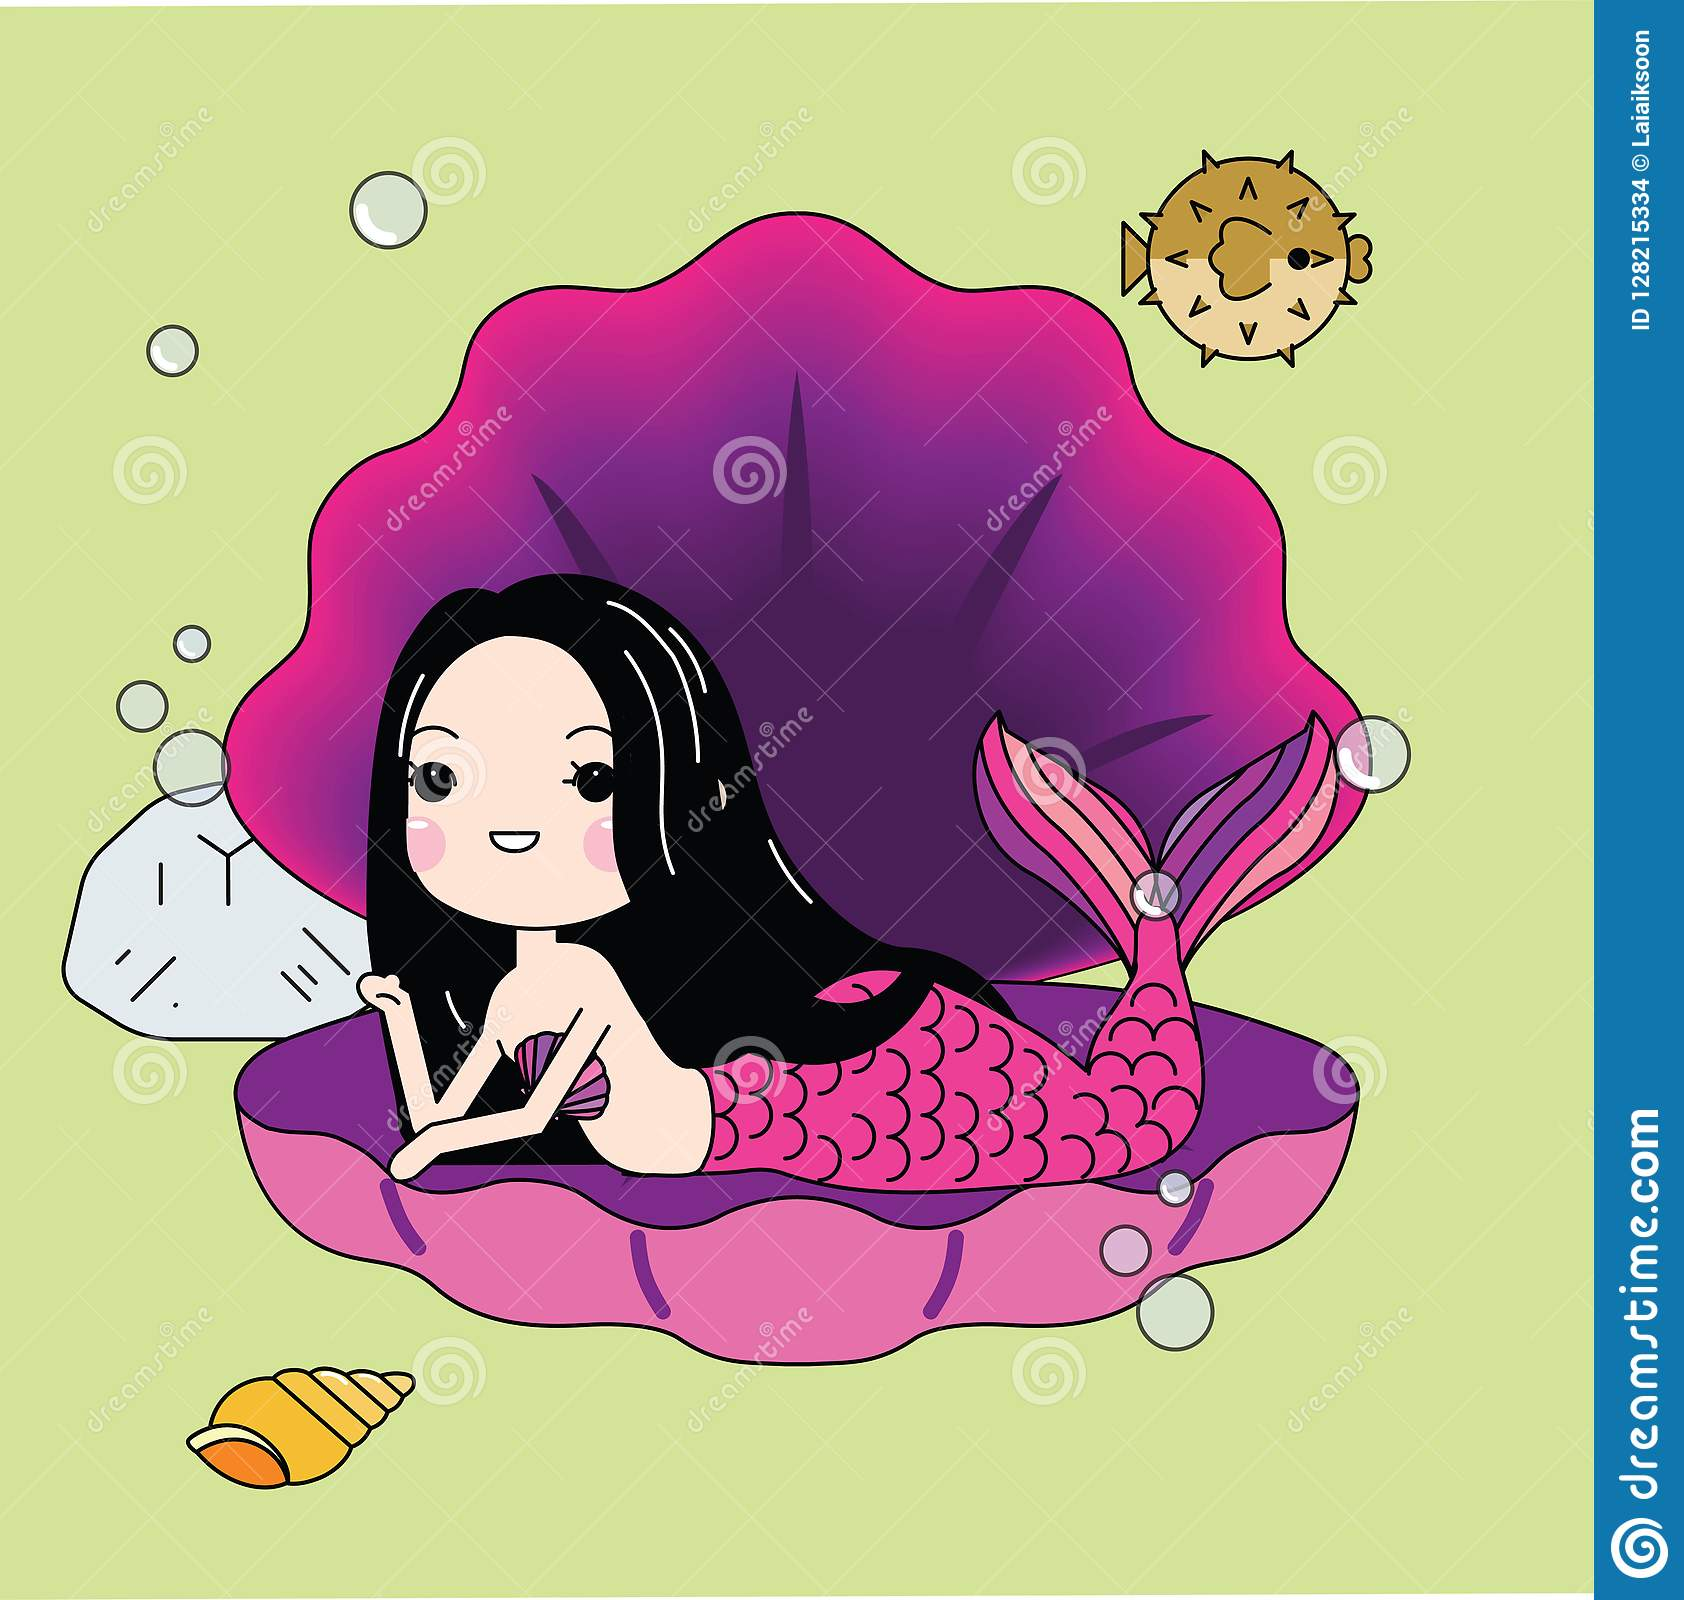 Vector Cute Little Mermaid Under The Sea Cartoon Illustration Royalty Free  Cliparts, Vectors, And Stock Illustration. Image 111398356.